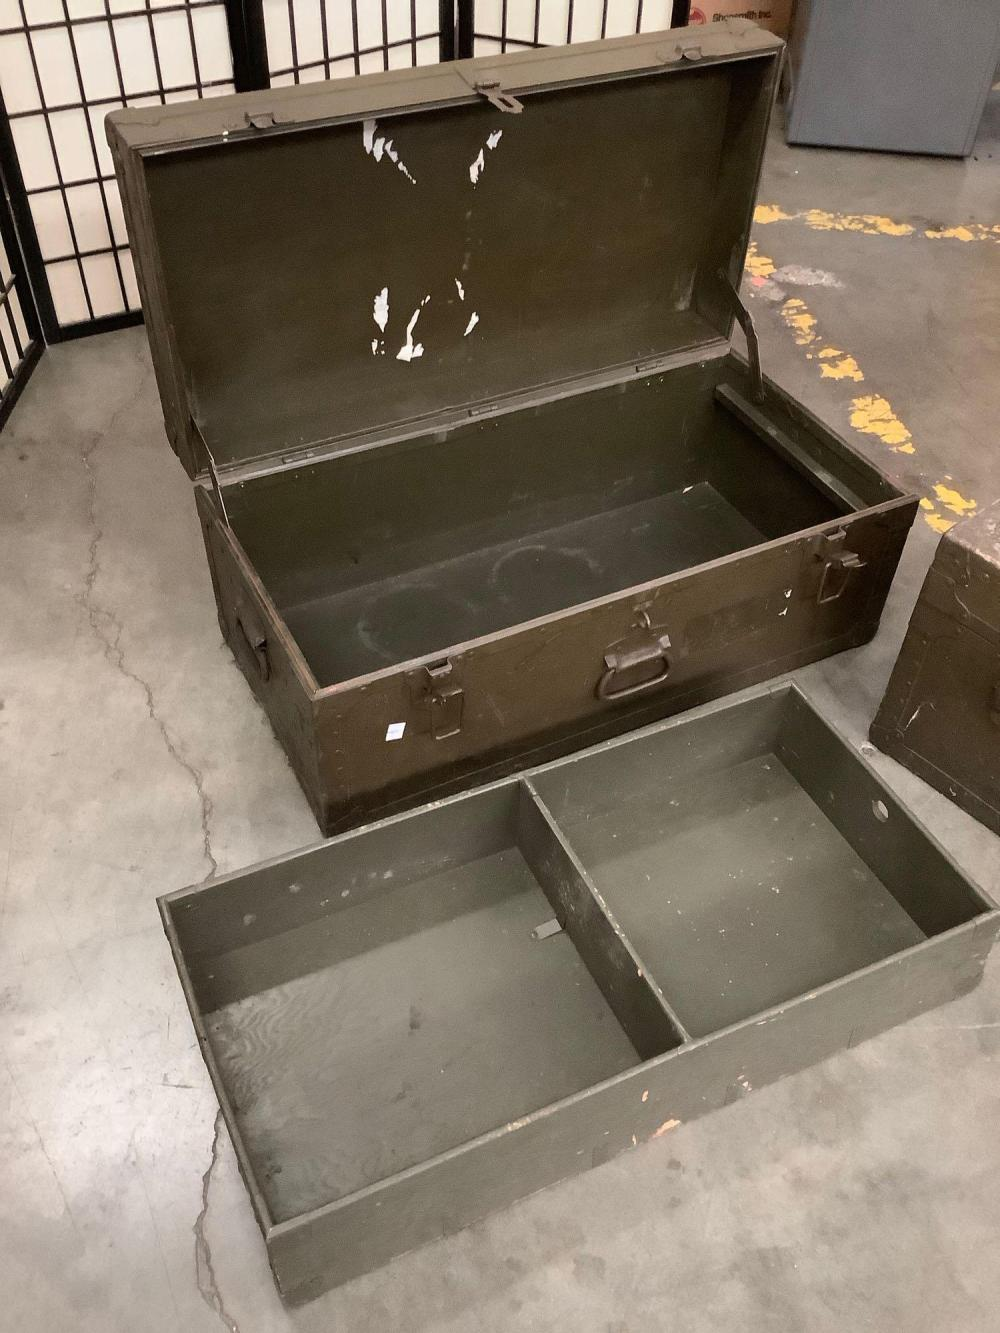 Lot 56: 2 vintage mid century military footlockers / storage trunks, with interior divider shelf